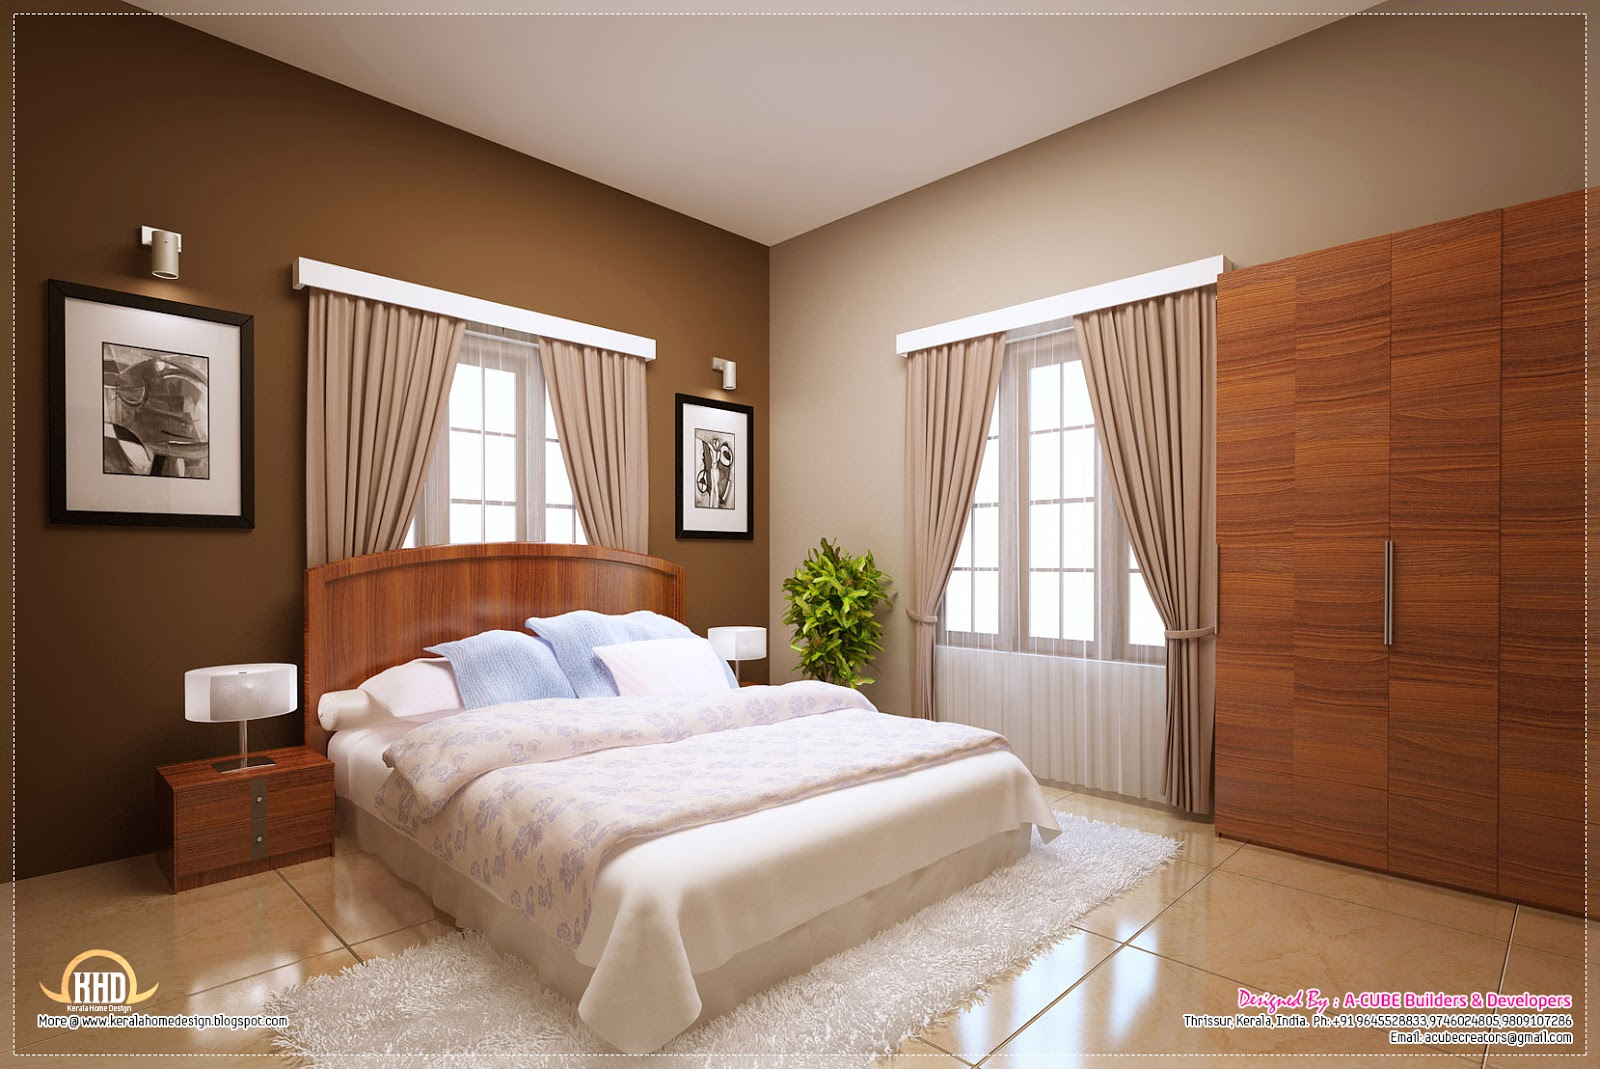 Awesome interior decoration ideas kerala home design and for Interior decoration for bedroom pictures